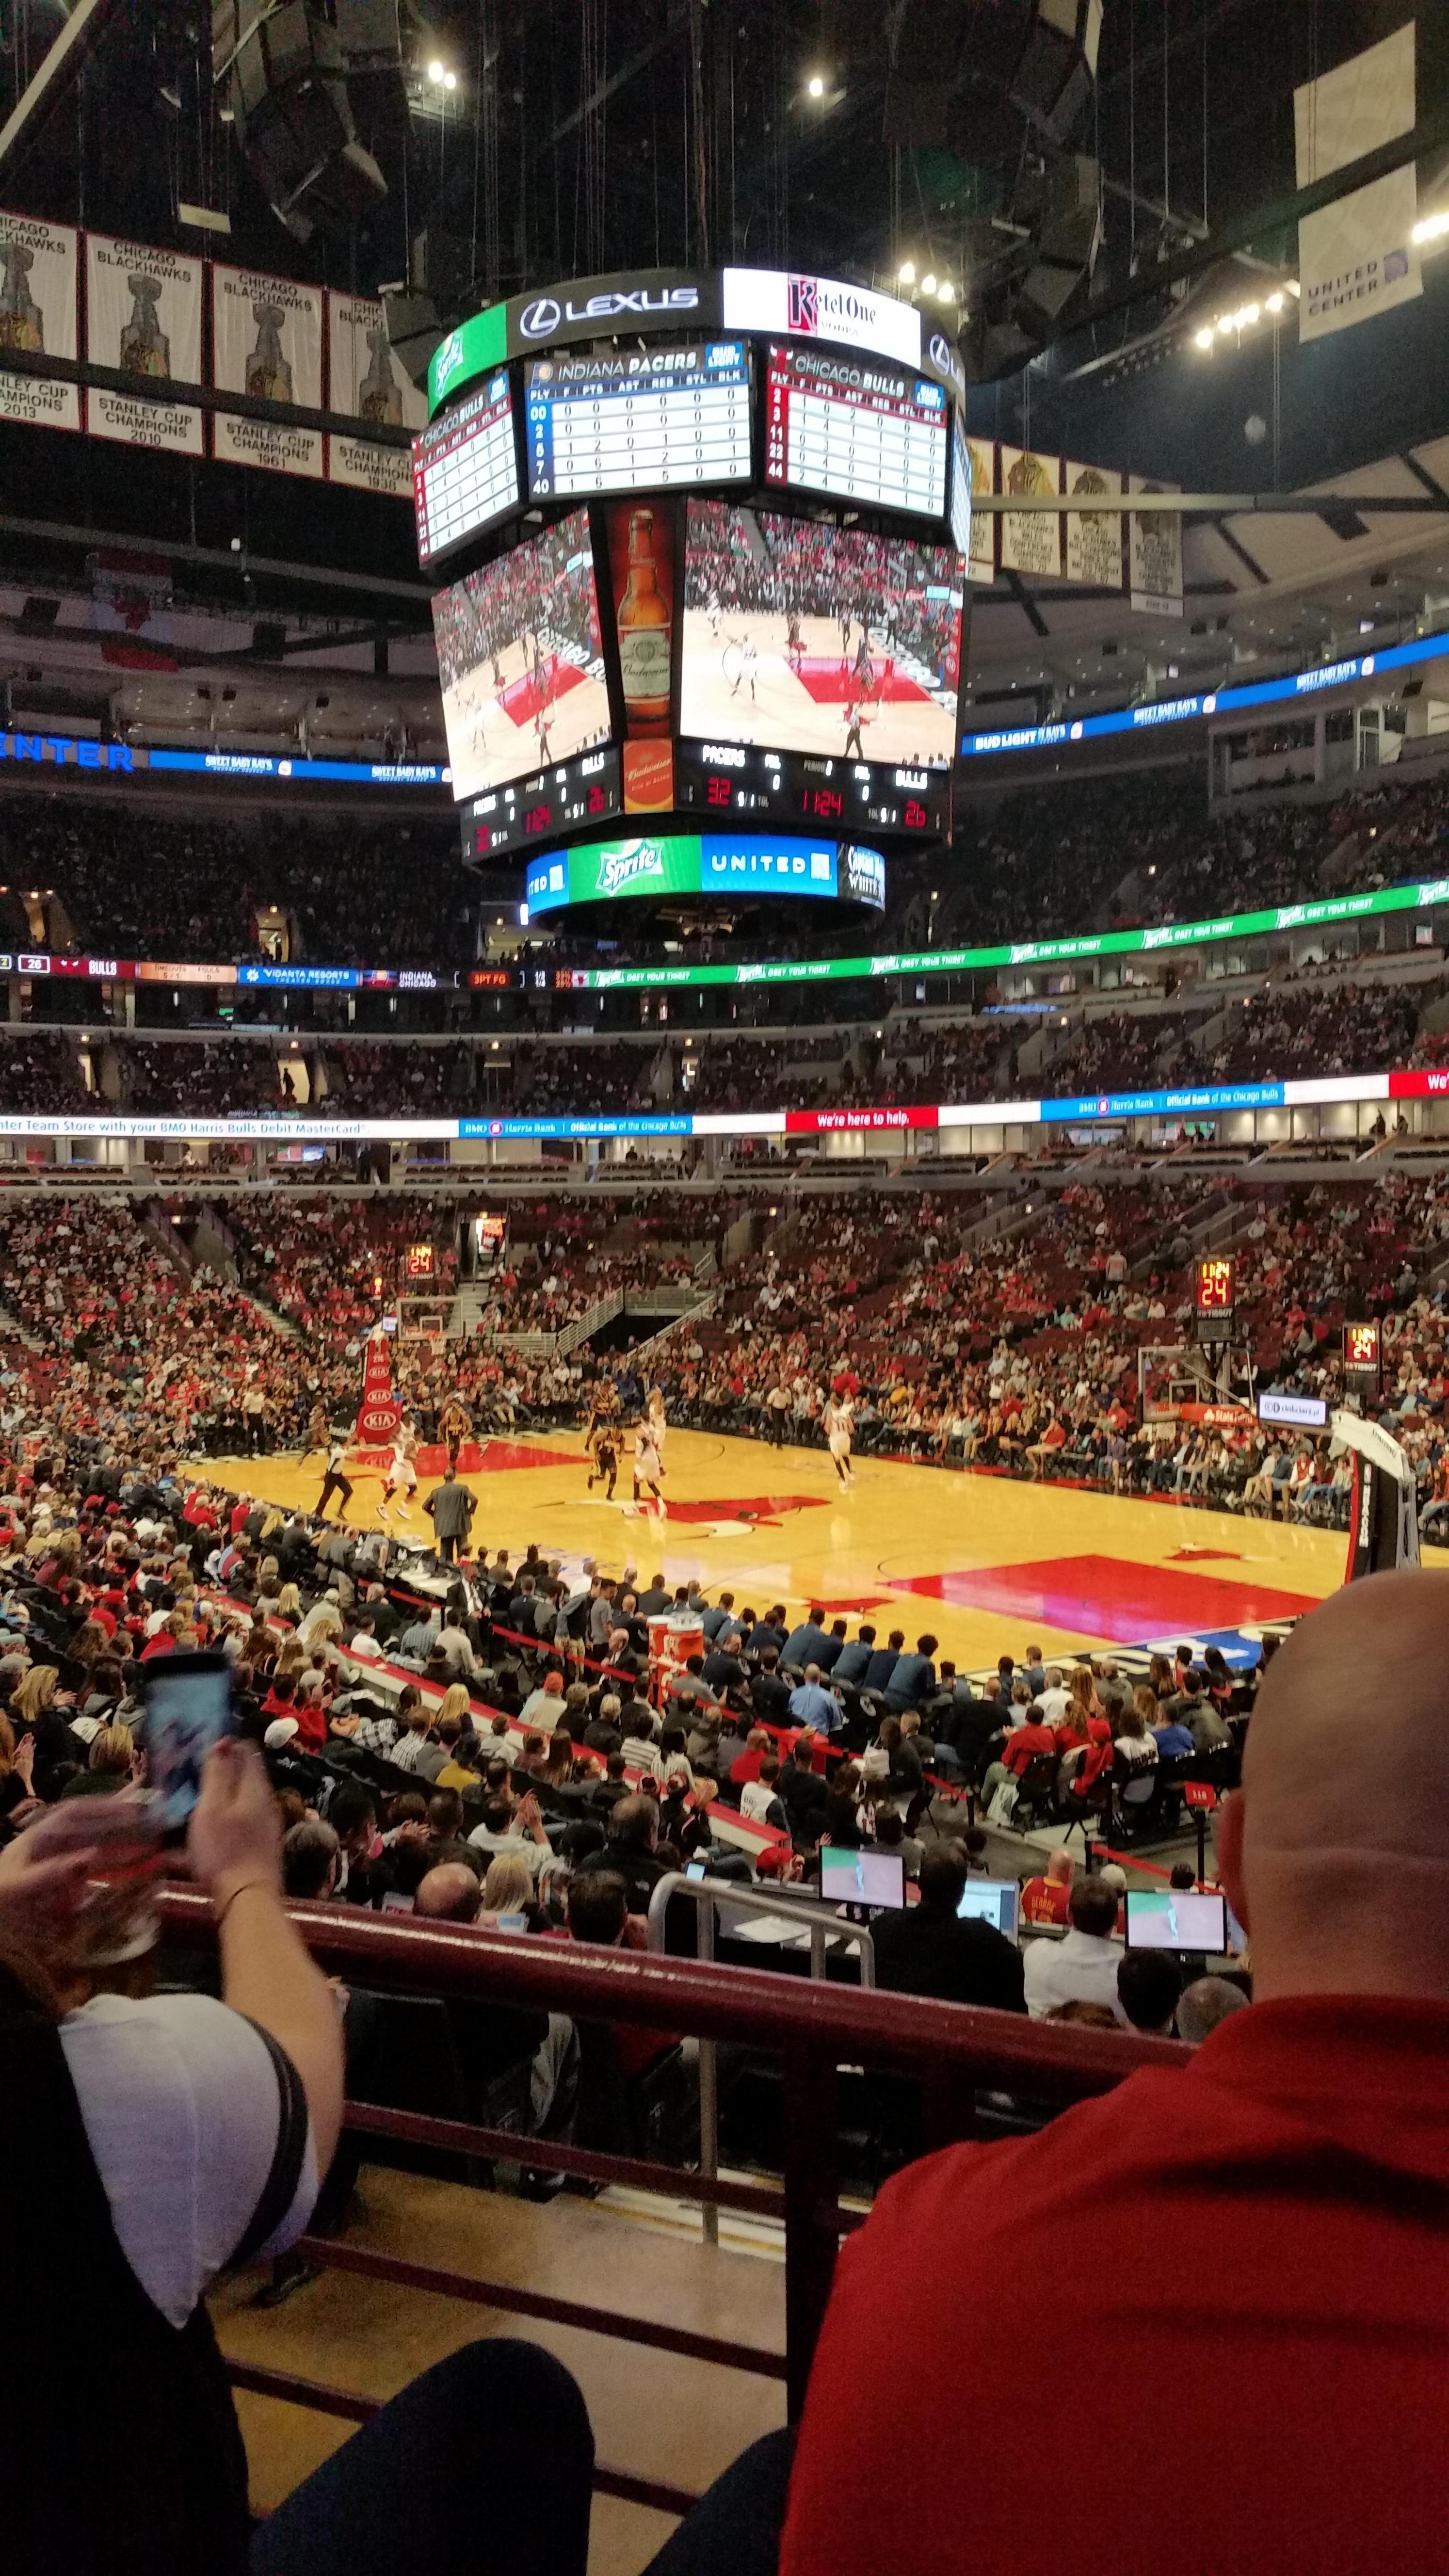 United Center Section 119 Row 17 Seat 20